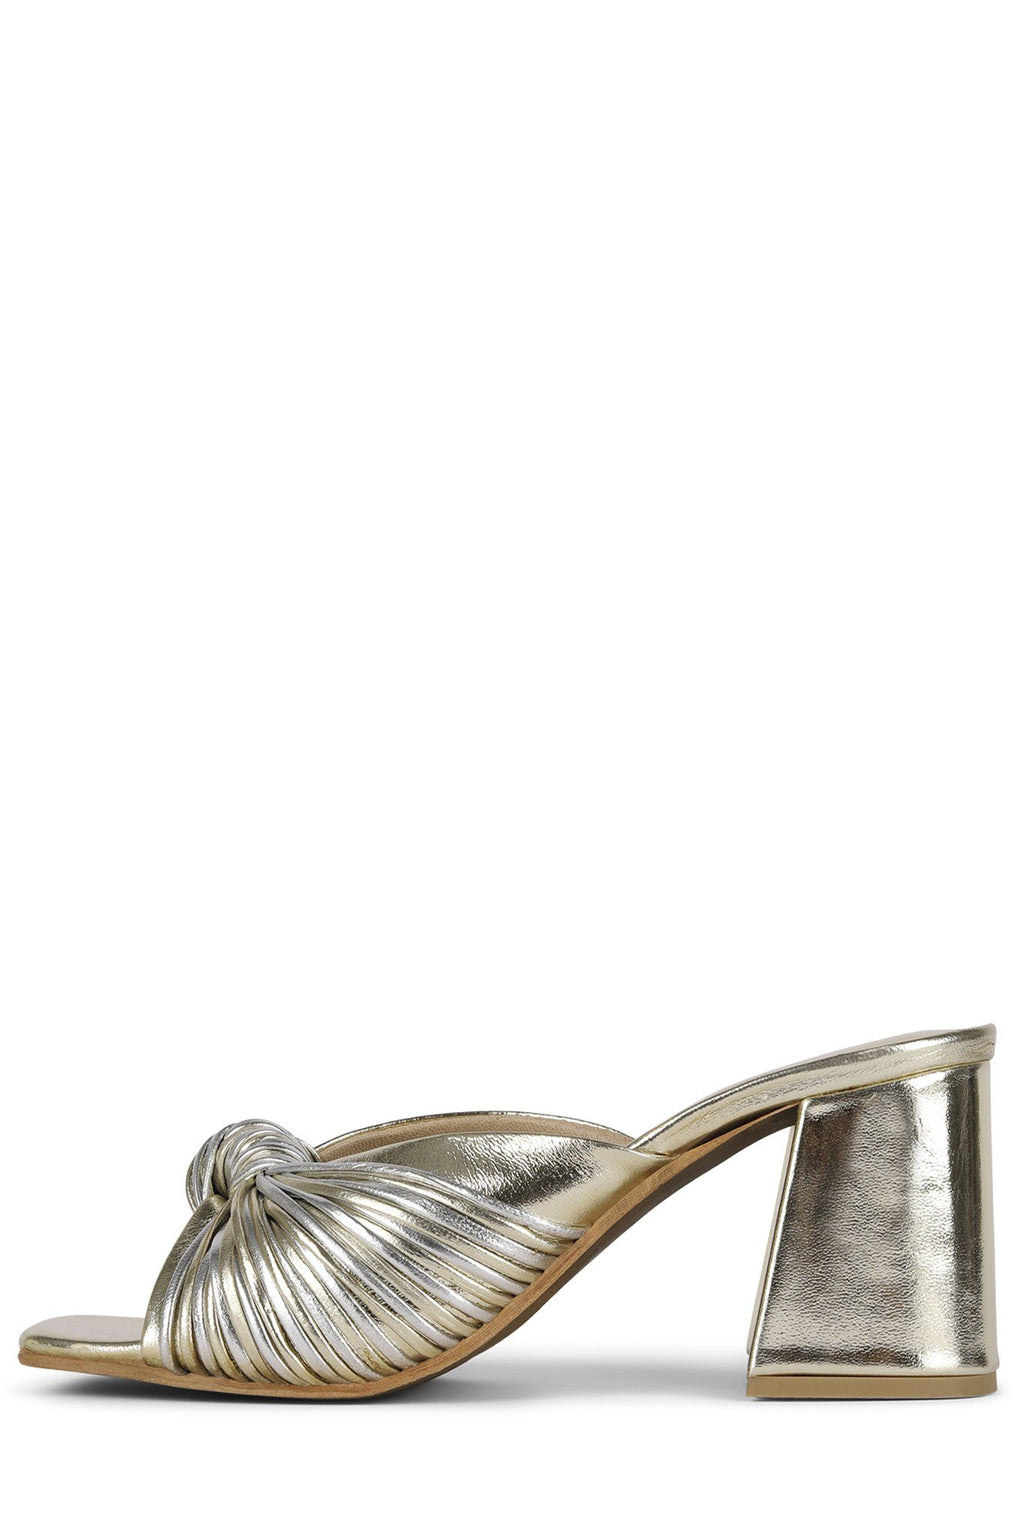 MELONGER Heeled Sandal Jeffrey Campbell Silver Gold 6.5